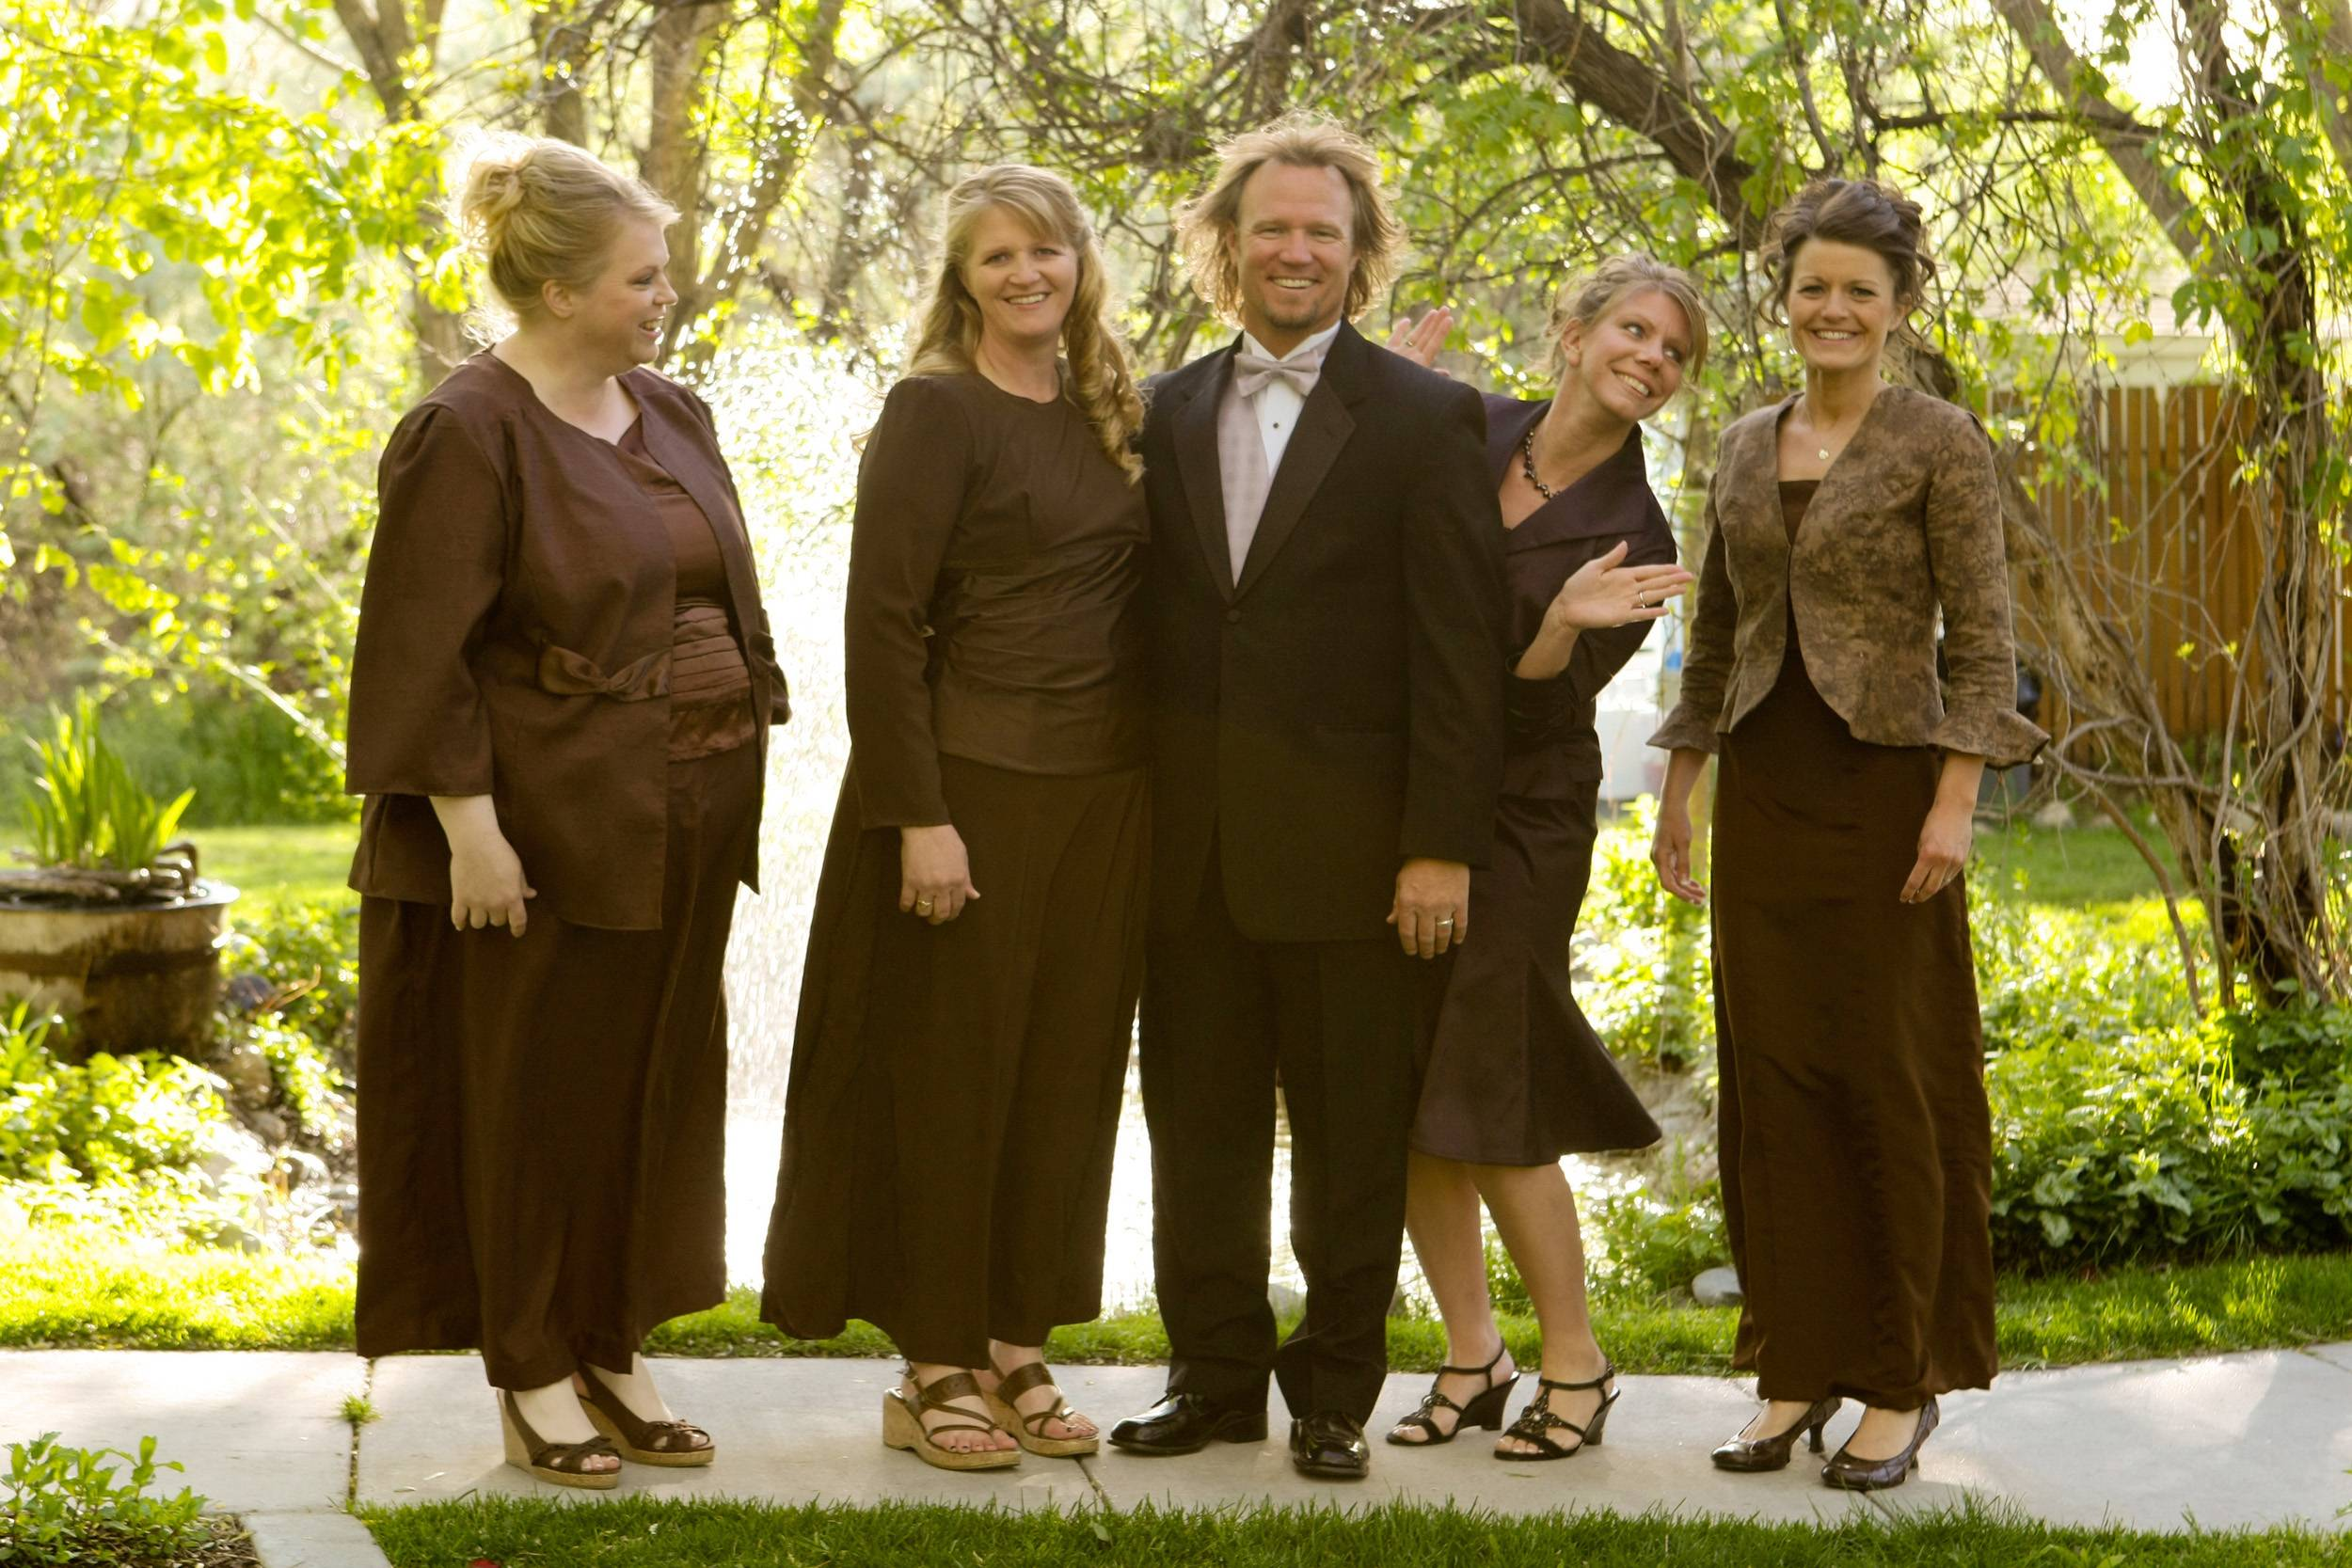 Kody Brown, center, with his wives, Janelle, left, Christine, Meri and Robyn, and their attorney plan to file a lawsuit in Salt Lake City's U.S. District Court on Wednesday challenging the Utah bigamy law that makes their lifestyle illegal.